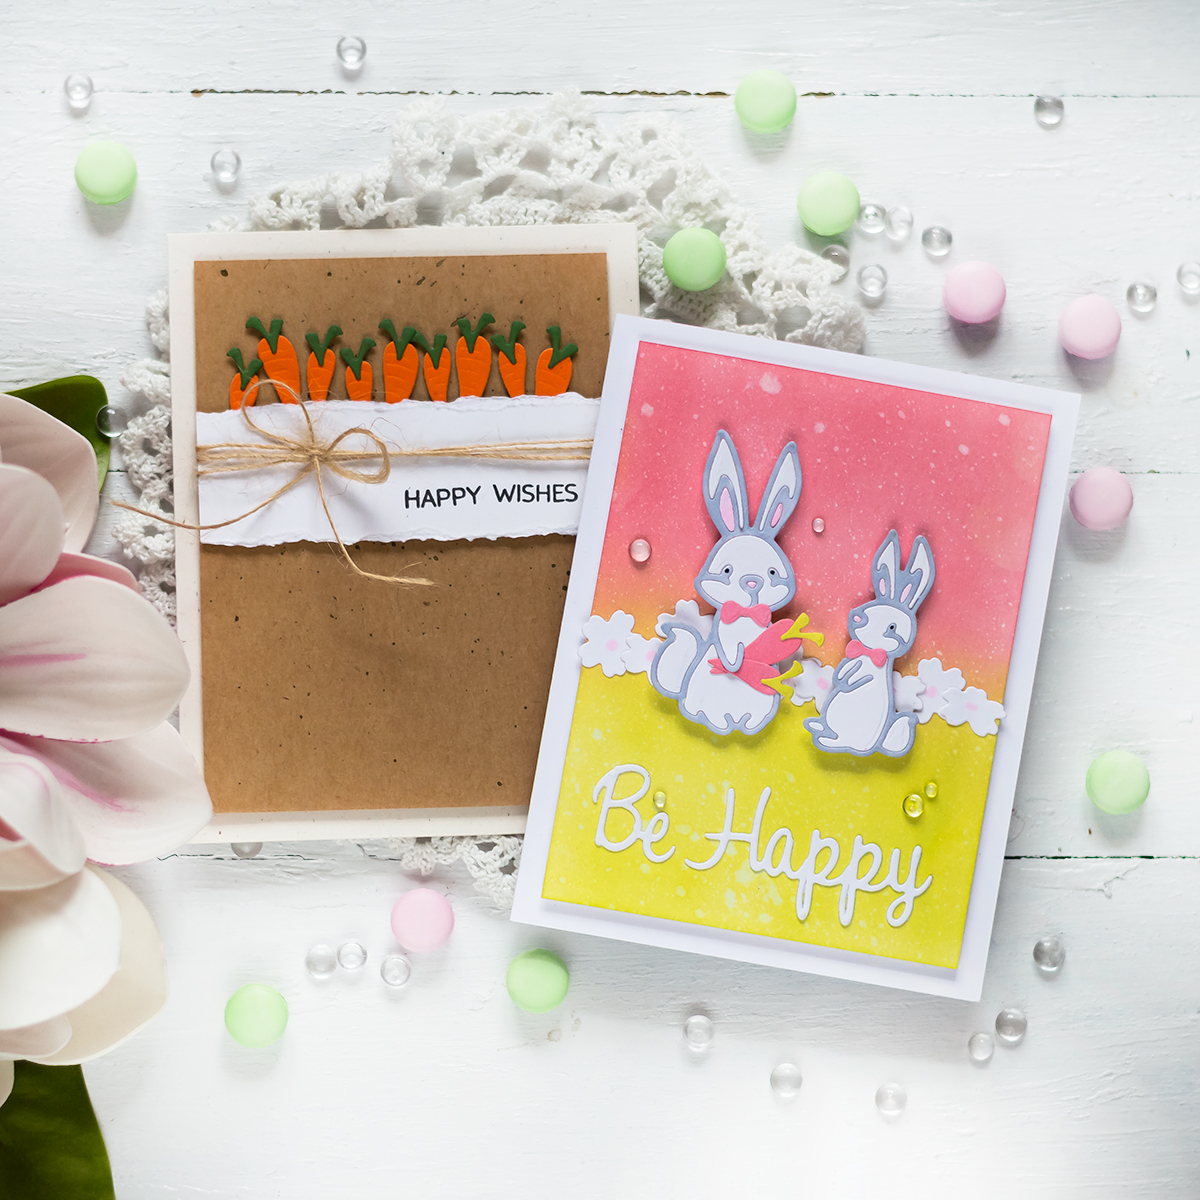 Spellbinders | March Small Die Of The Month · Craft Walks